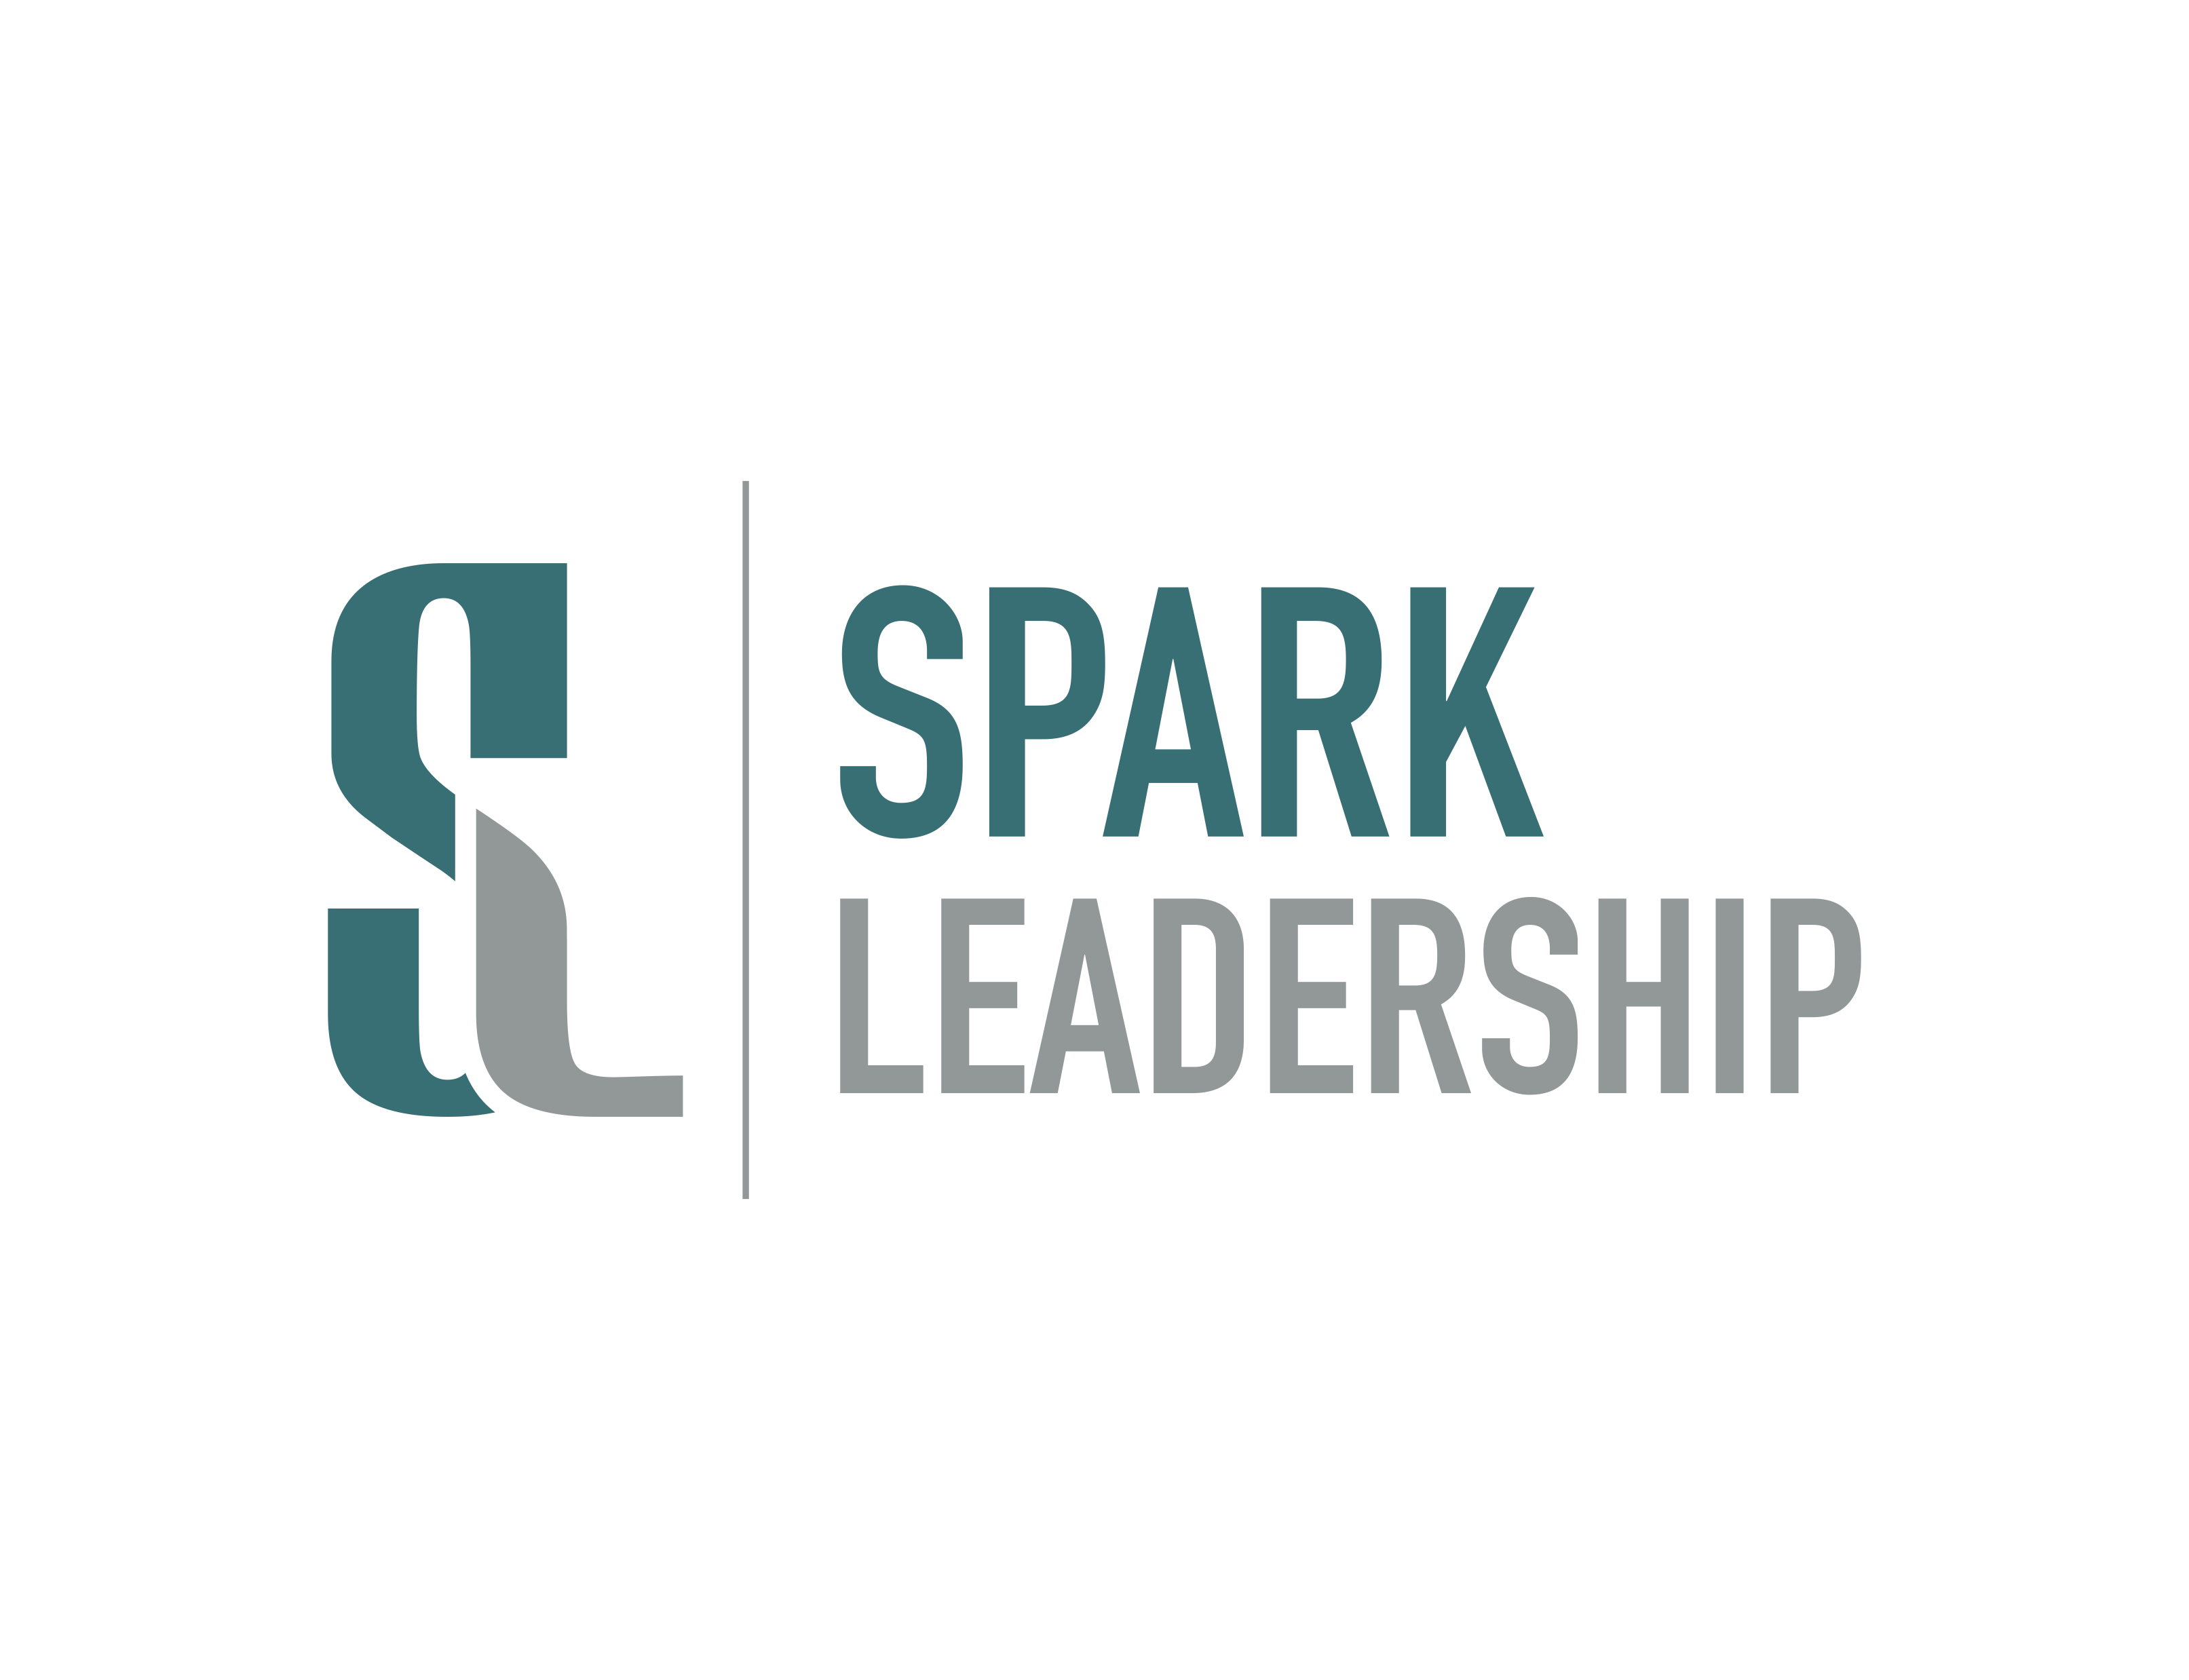 Design a memorable and impactful logo for Spark Leadership